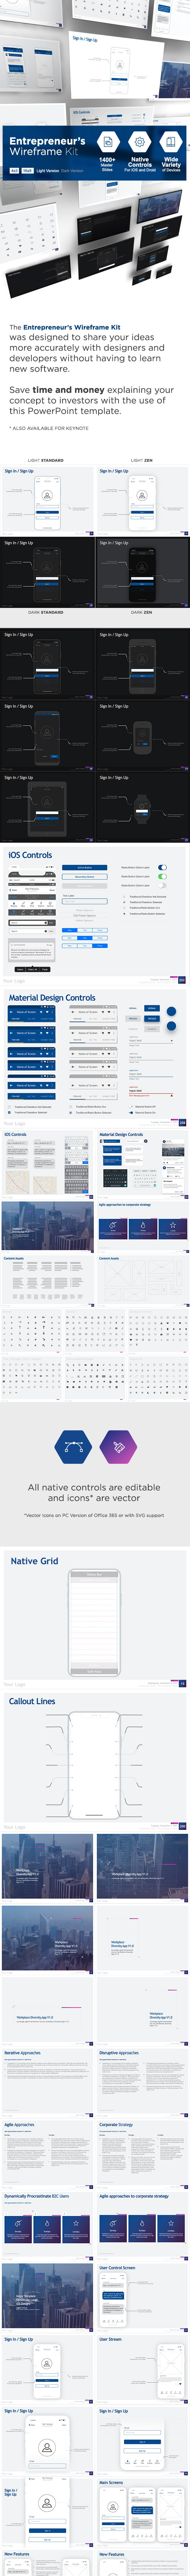 The Entrepreneur's Wireframe Kit - PowerPoint Version - Business PowerPoint Templates